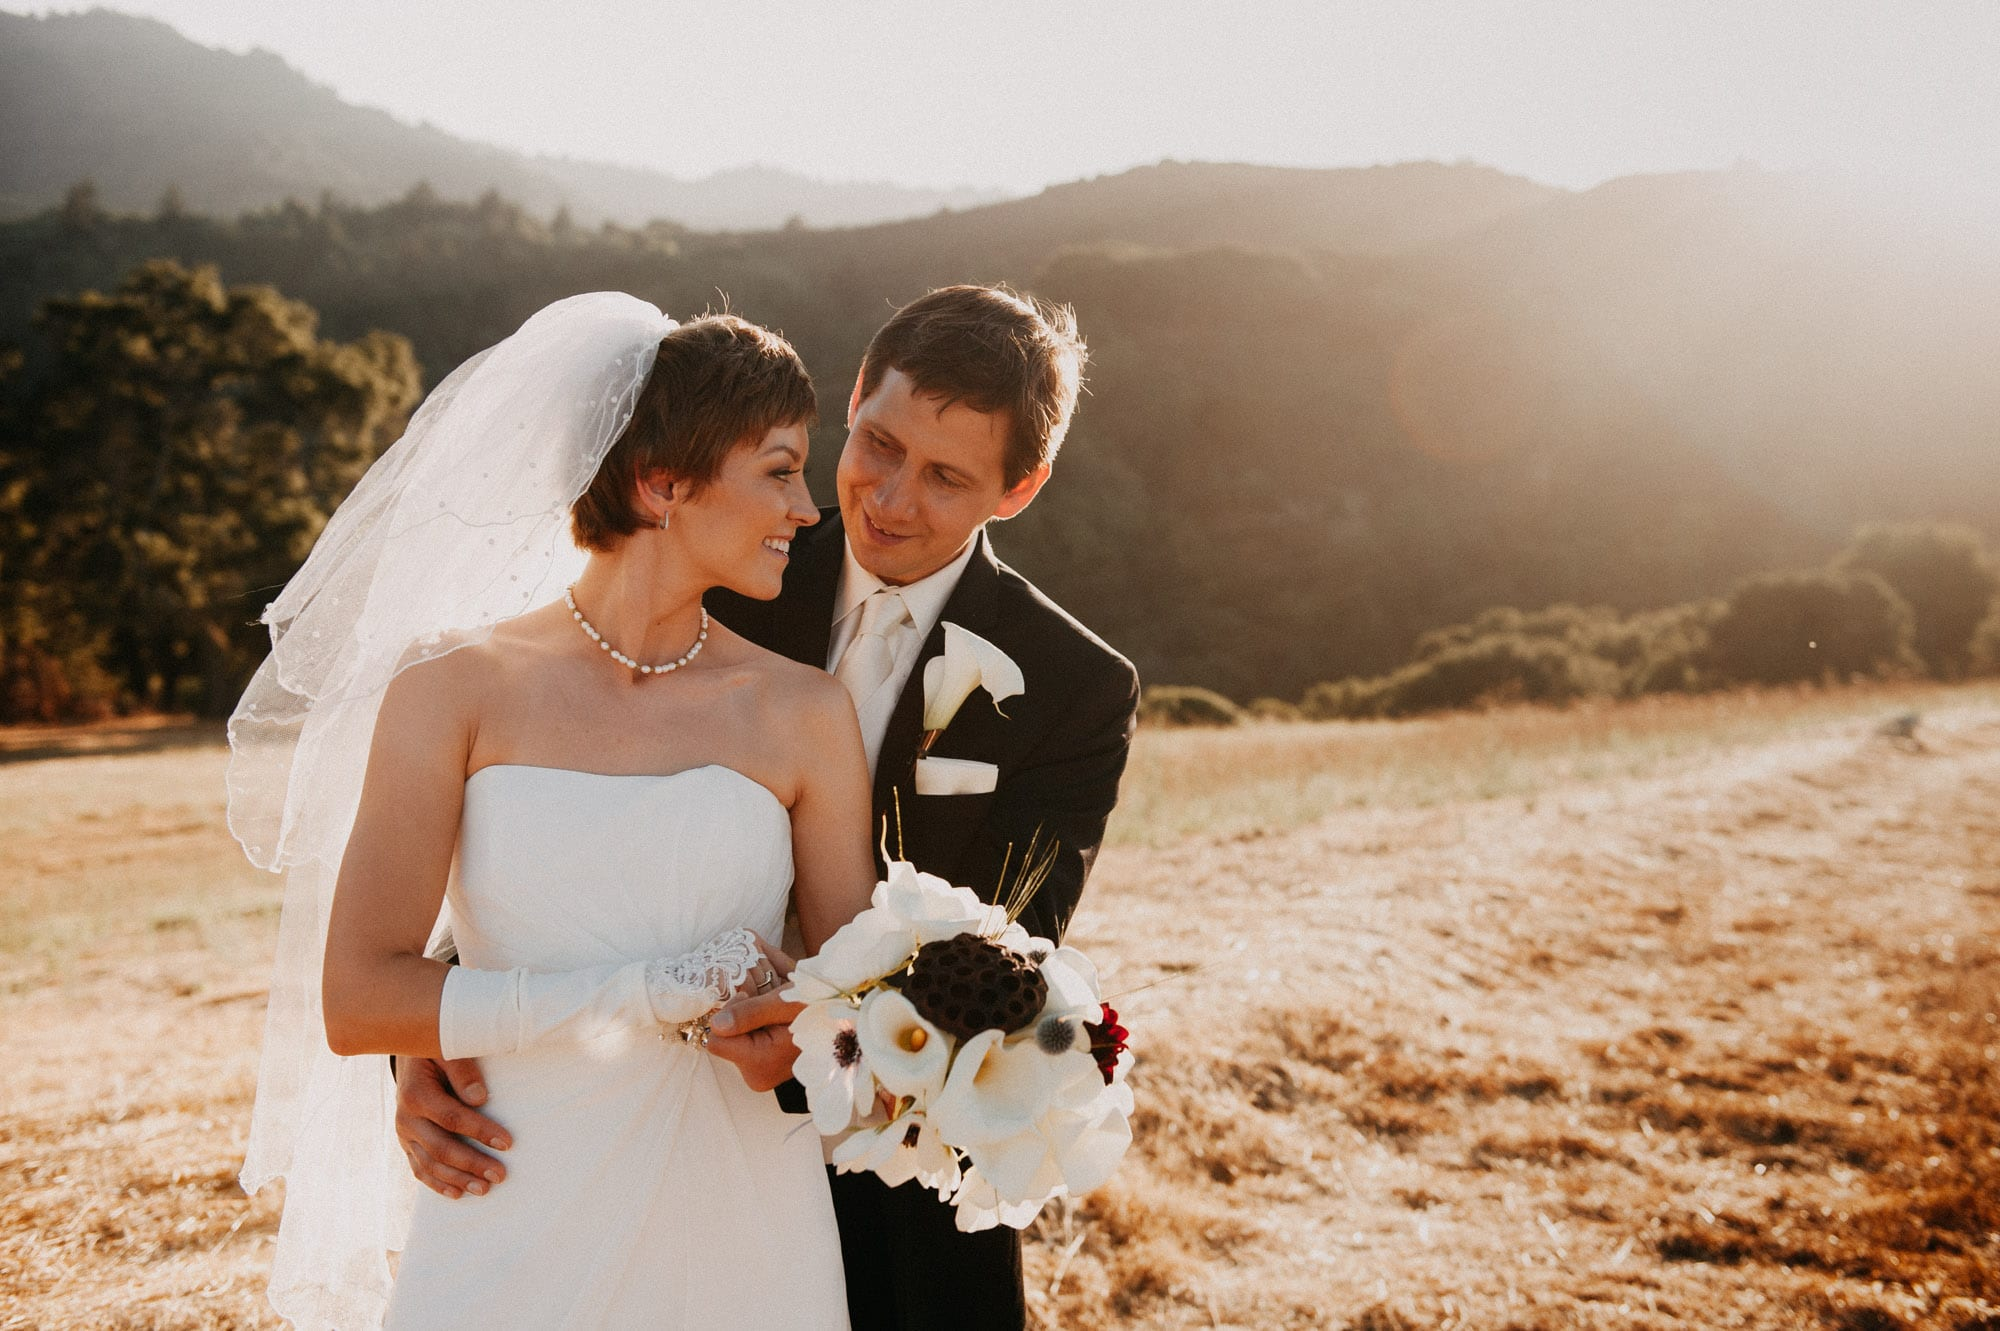 Wedding portrait, Mountain View Winery, California, wedding portfolio